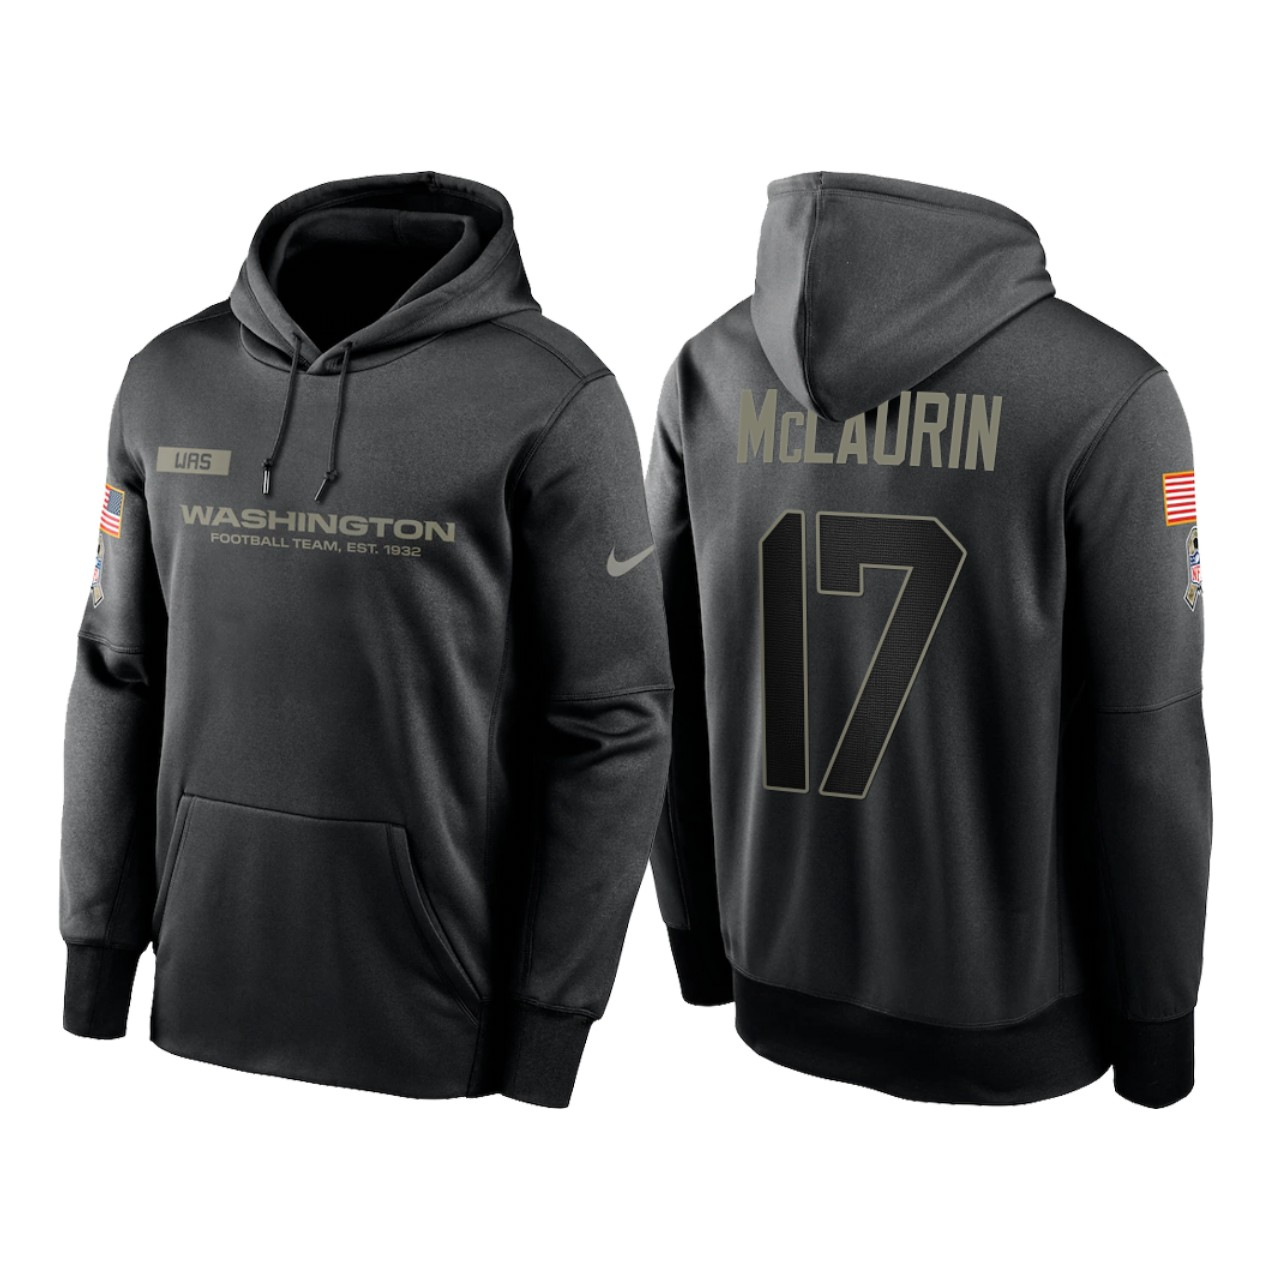 Men's Washington Football Team #17 Terry McLaurin 2020 Black Salute to Service Sideline Performance Pullover Hoodie